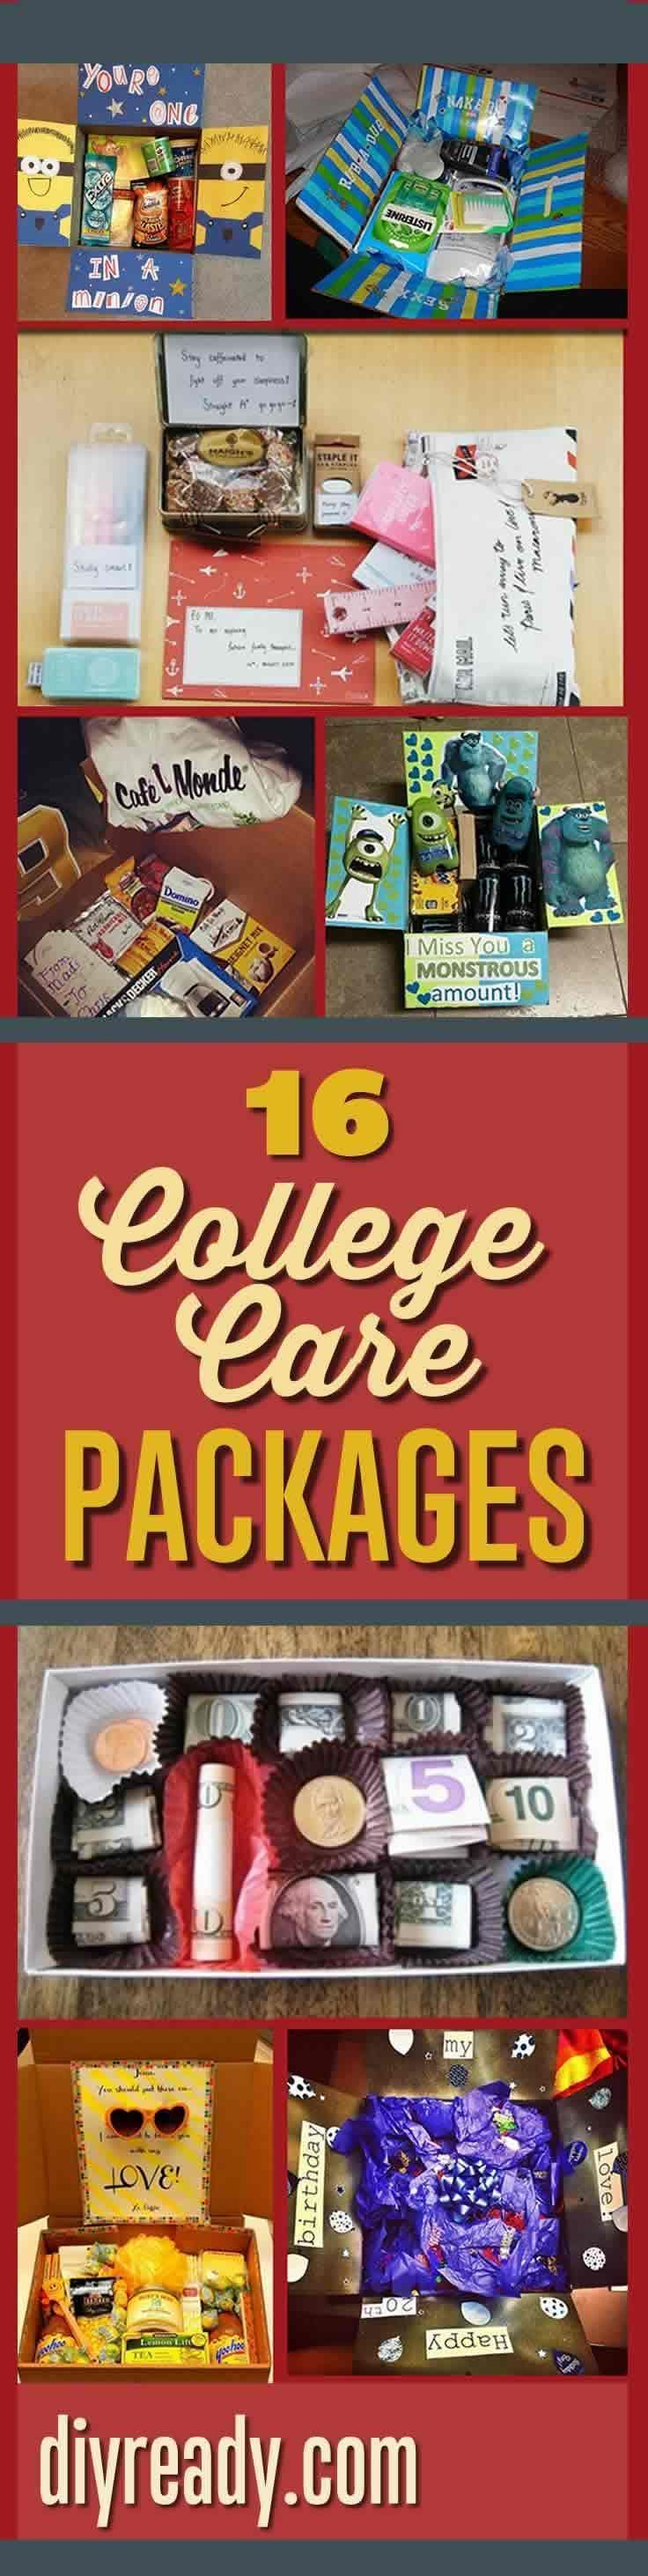 16 Cool College Care Package DIY Ideas | Give these crafty DIY care packages a try for gifts >> http://diyready.com/16-cool-college-care-package-ideas/ #DIYReady #diycrafts